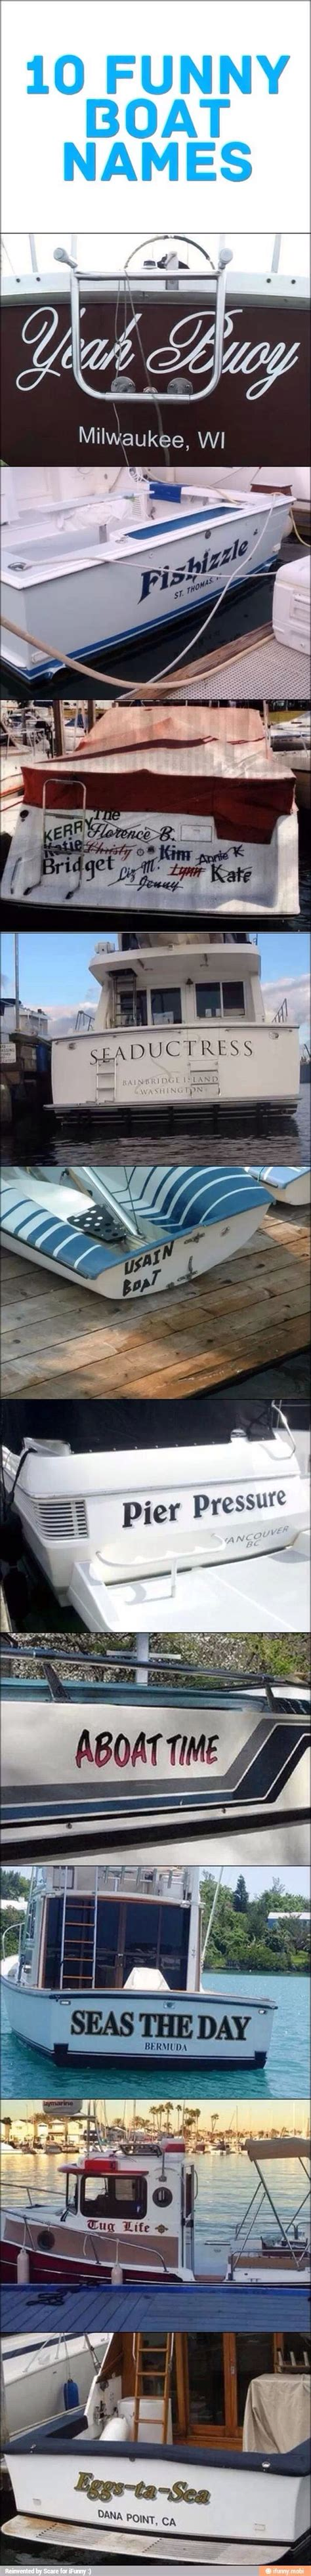 witty fishing boat names best 20 funny boat names ideas on pinterest